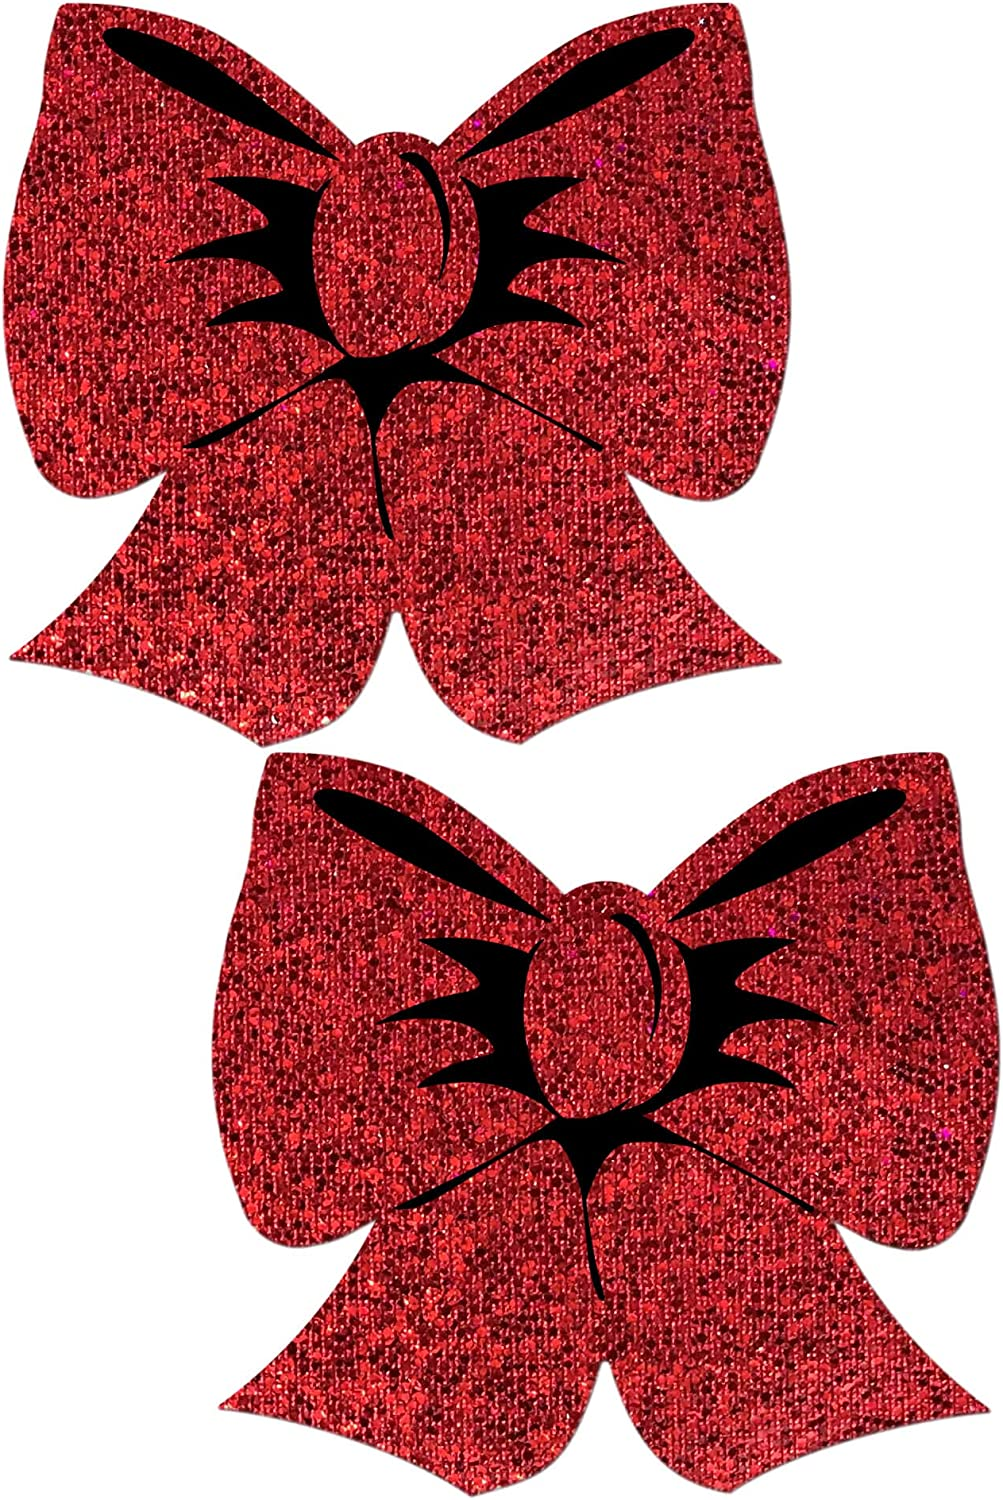 Pastease Nipple Pasties - Bow: Holographic Red Bows Nipple Pasti